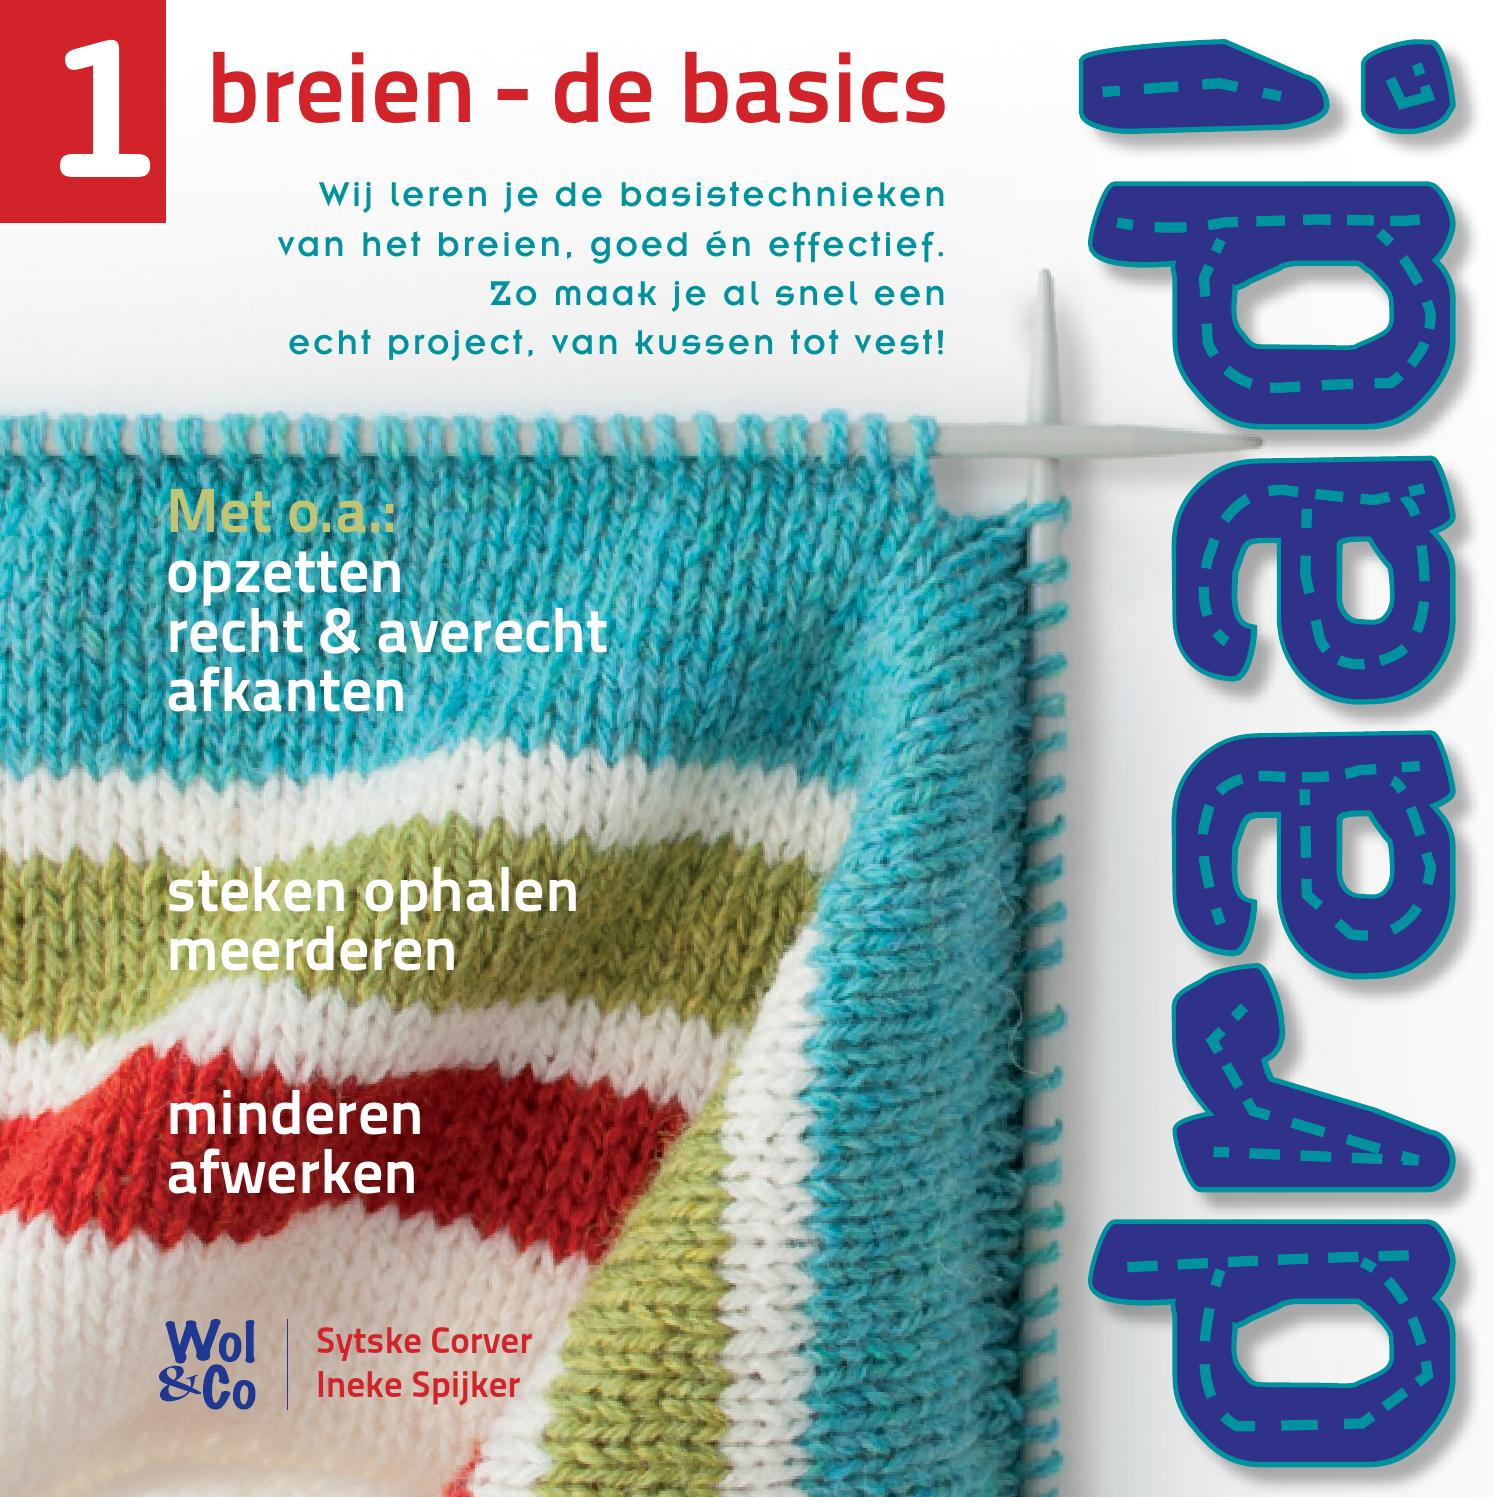 Breinaald Opzetten Draad 1 Breien De Basics By Wol Co Issuu